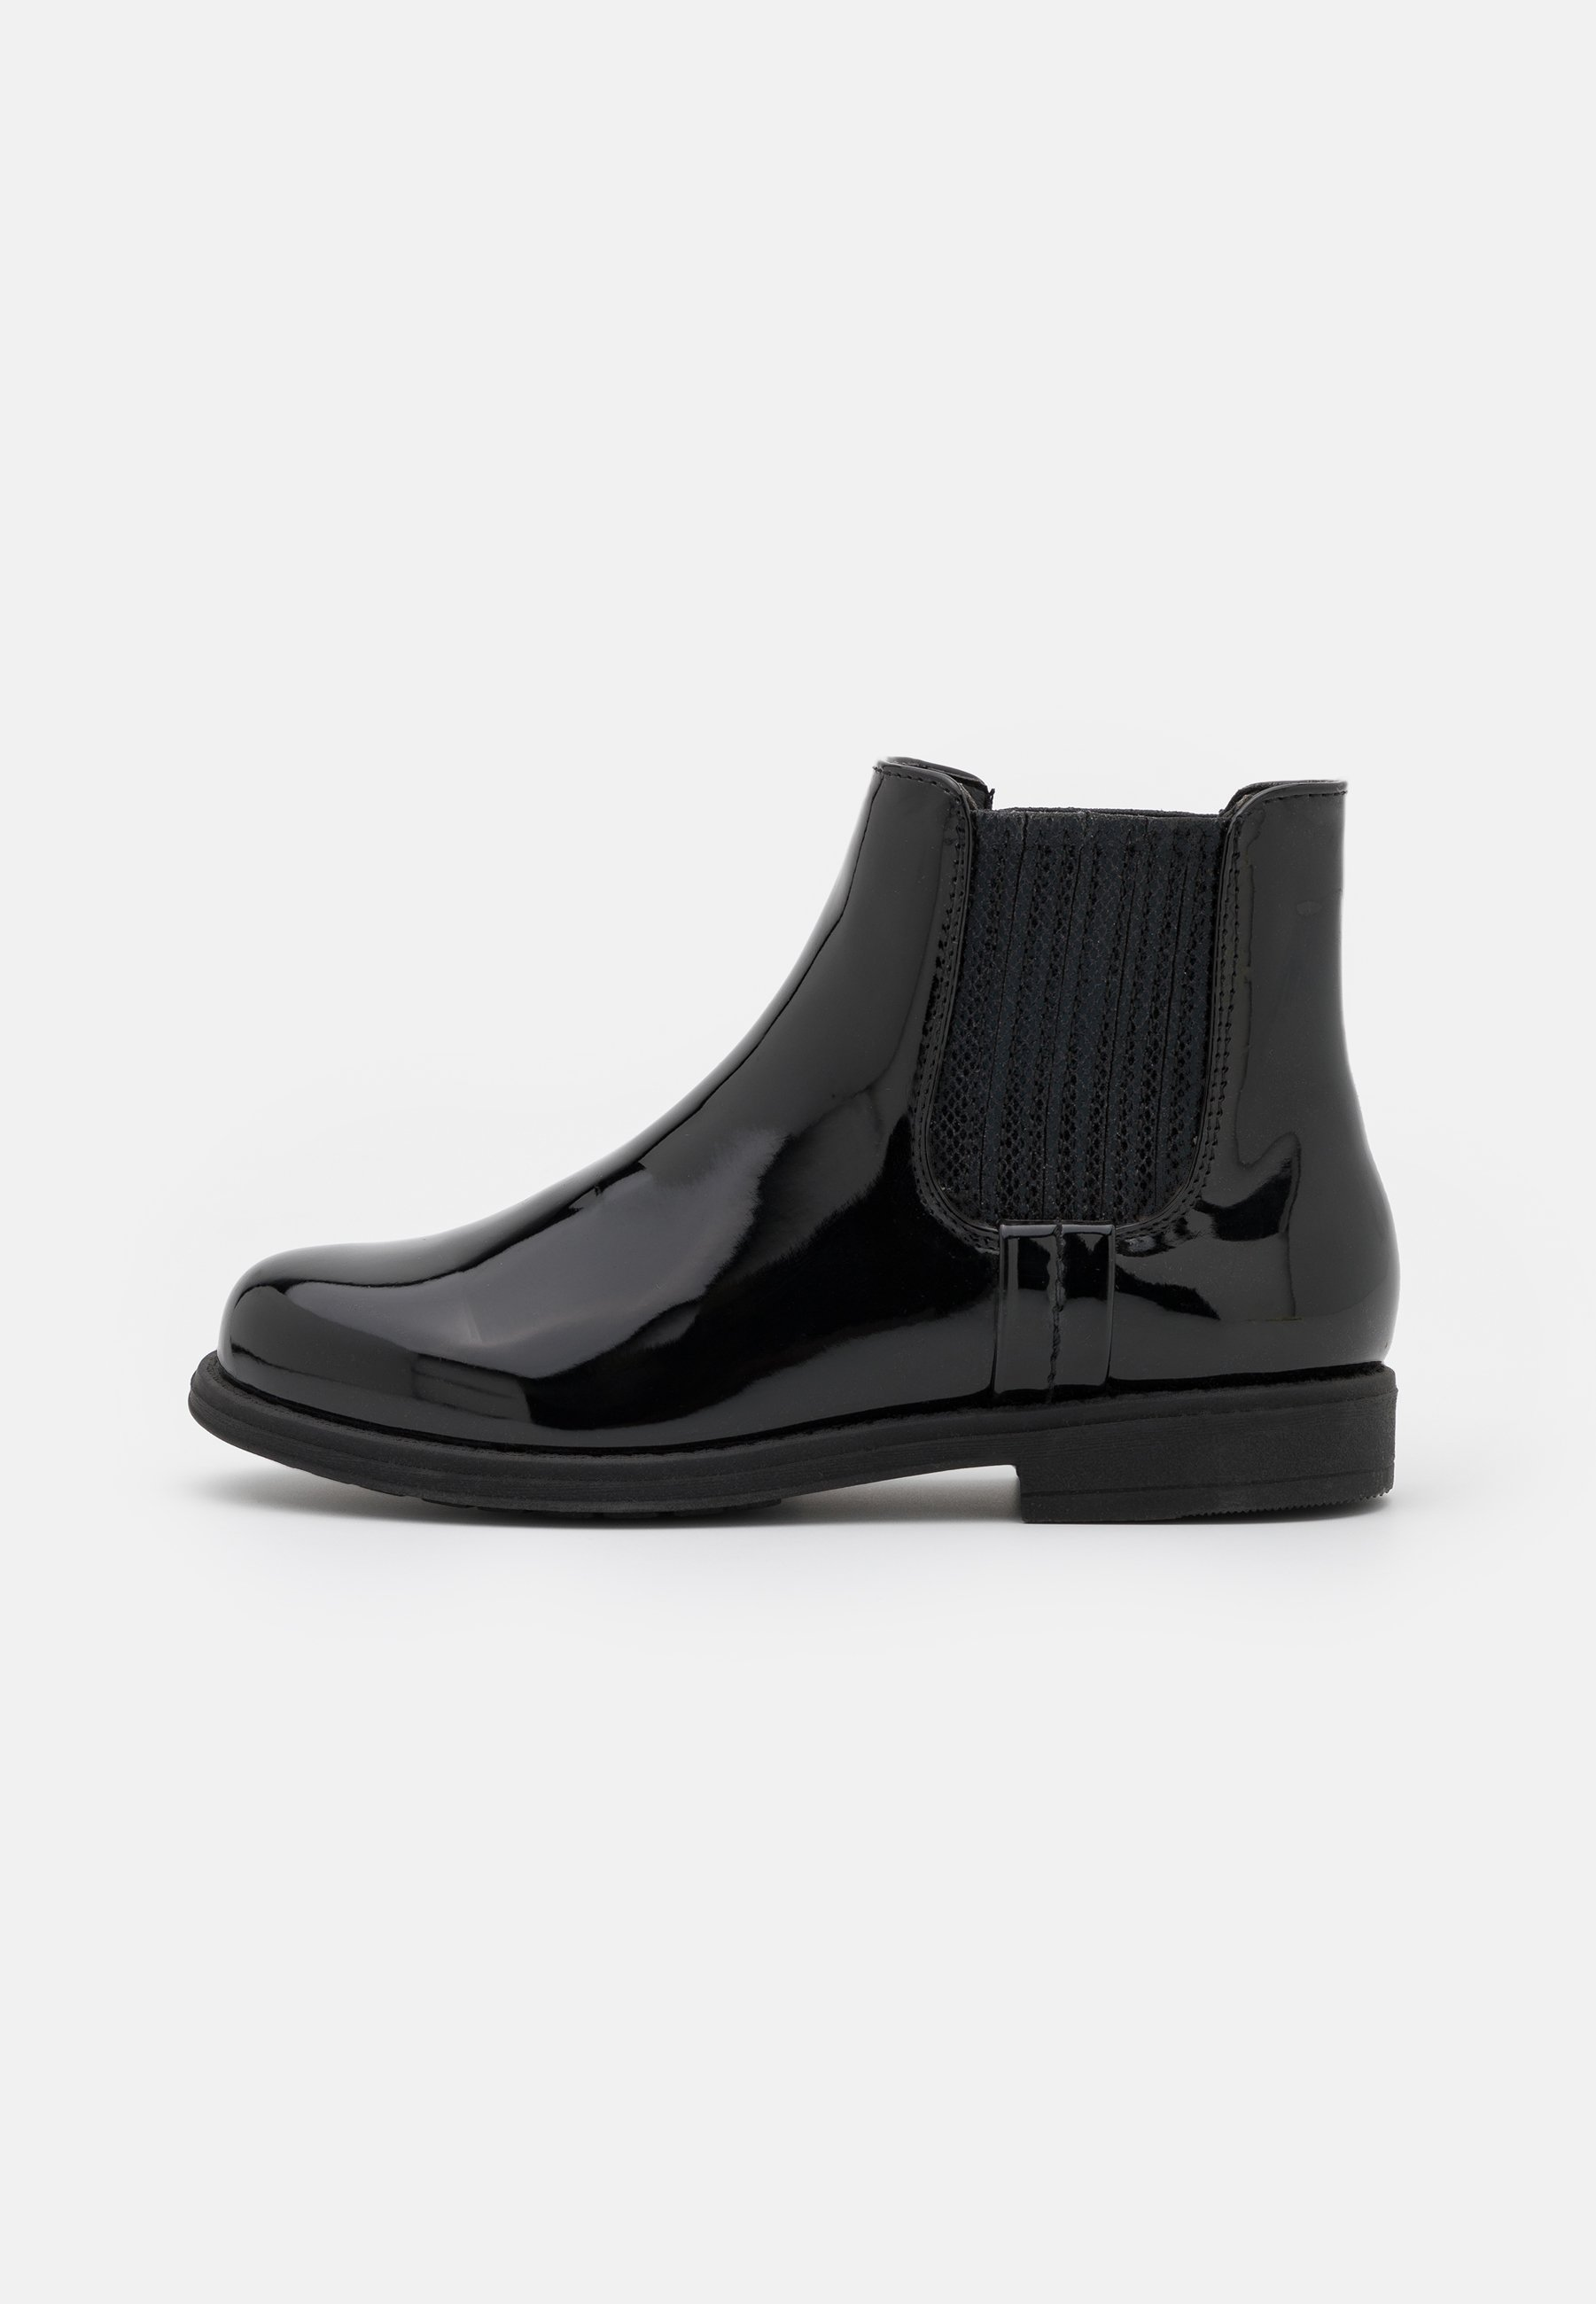 Kids Classic ankle boots